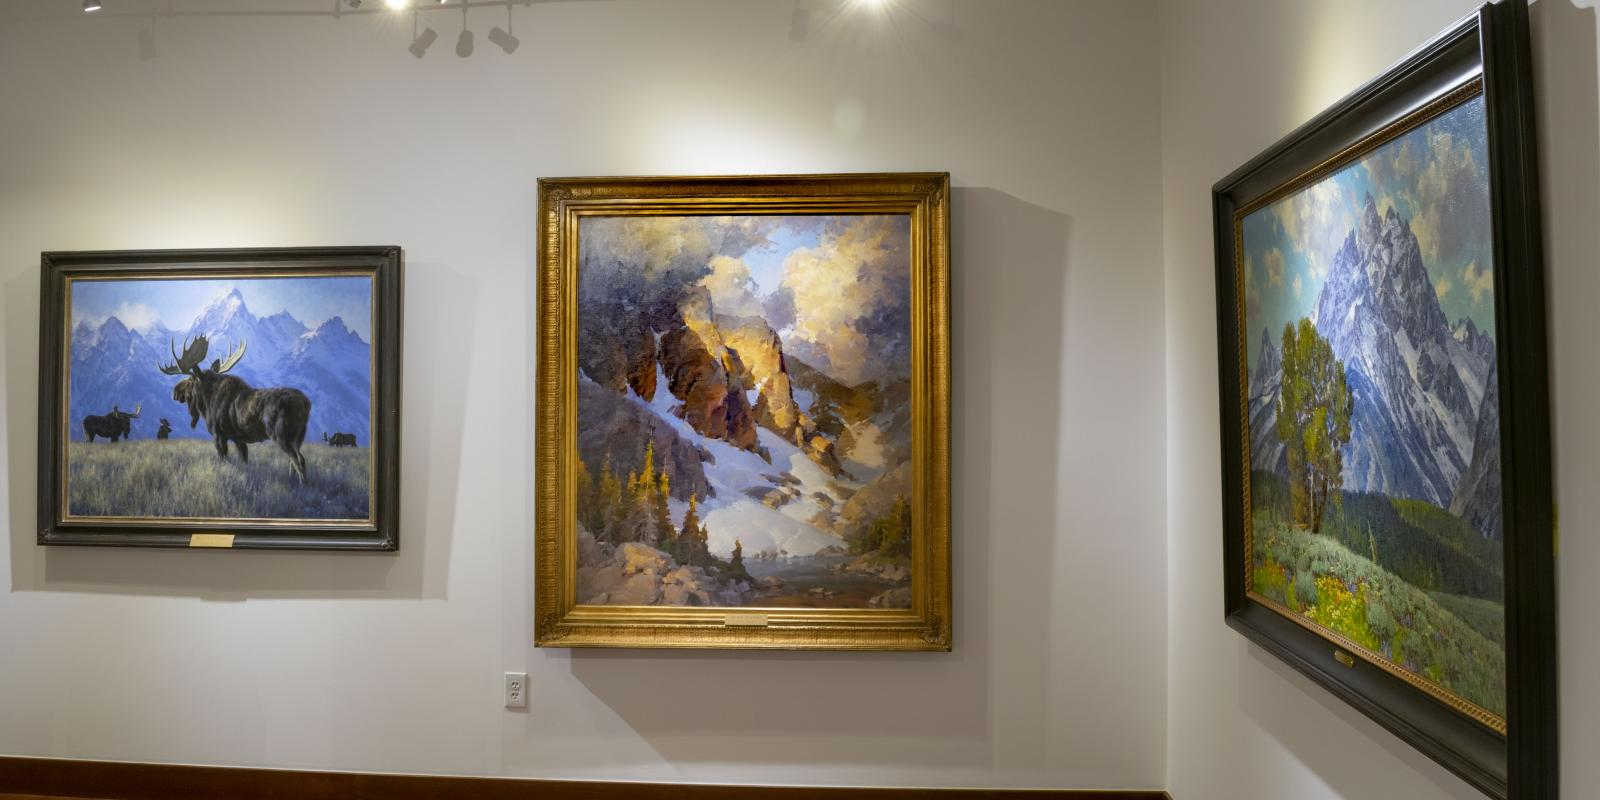 """Installation View, Back of gallery, """"Art of the West: New Acquisitions"""" Exhibition, Jun 24, 2019 to Sep26, 2019, Curator: Michele Cairella Fillmore, Don B. Huntley Gallery, Cal Poly Pomona."""